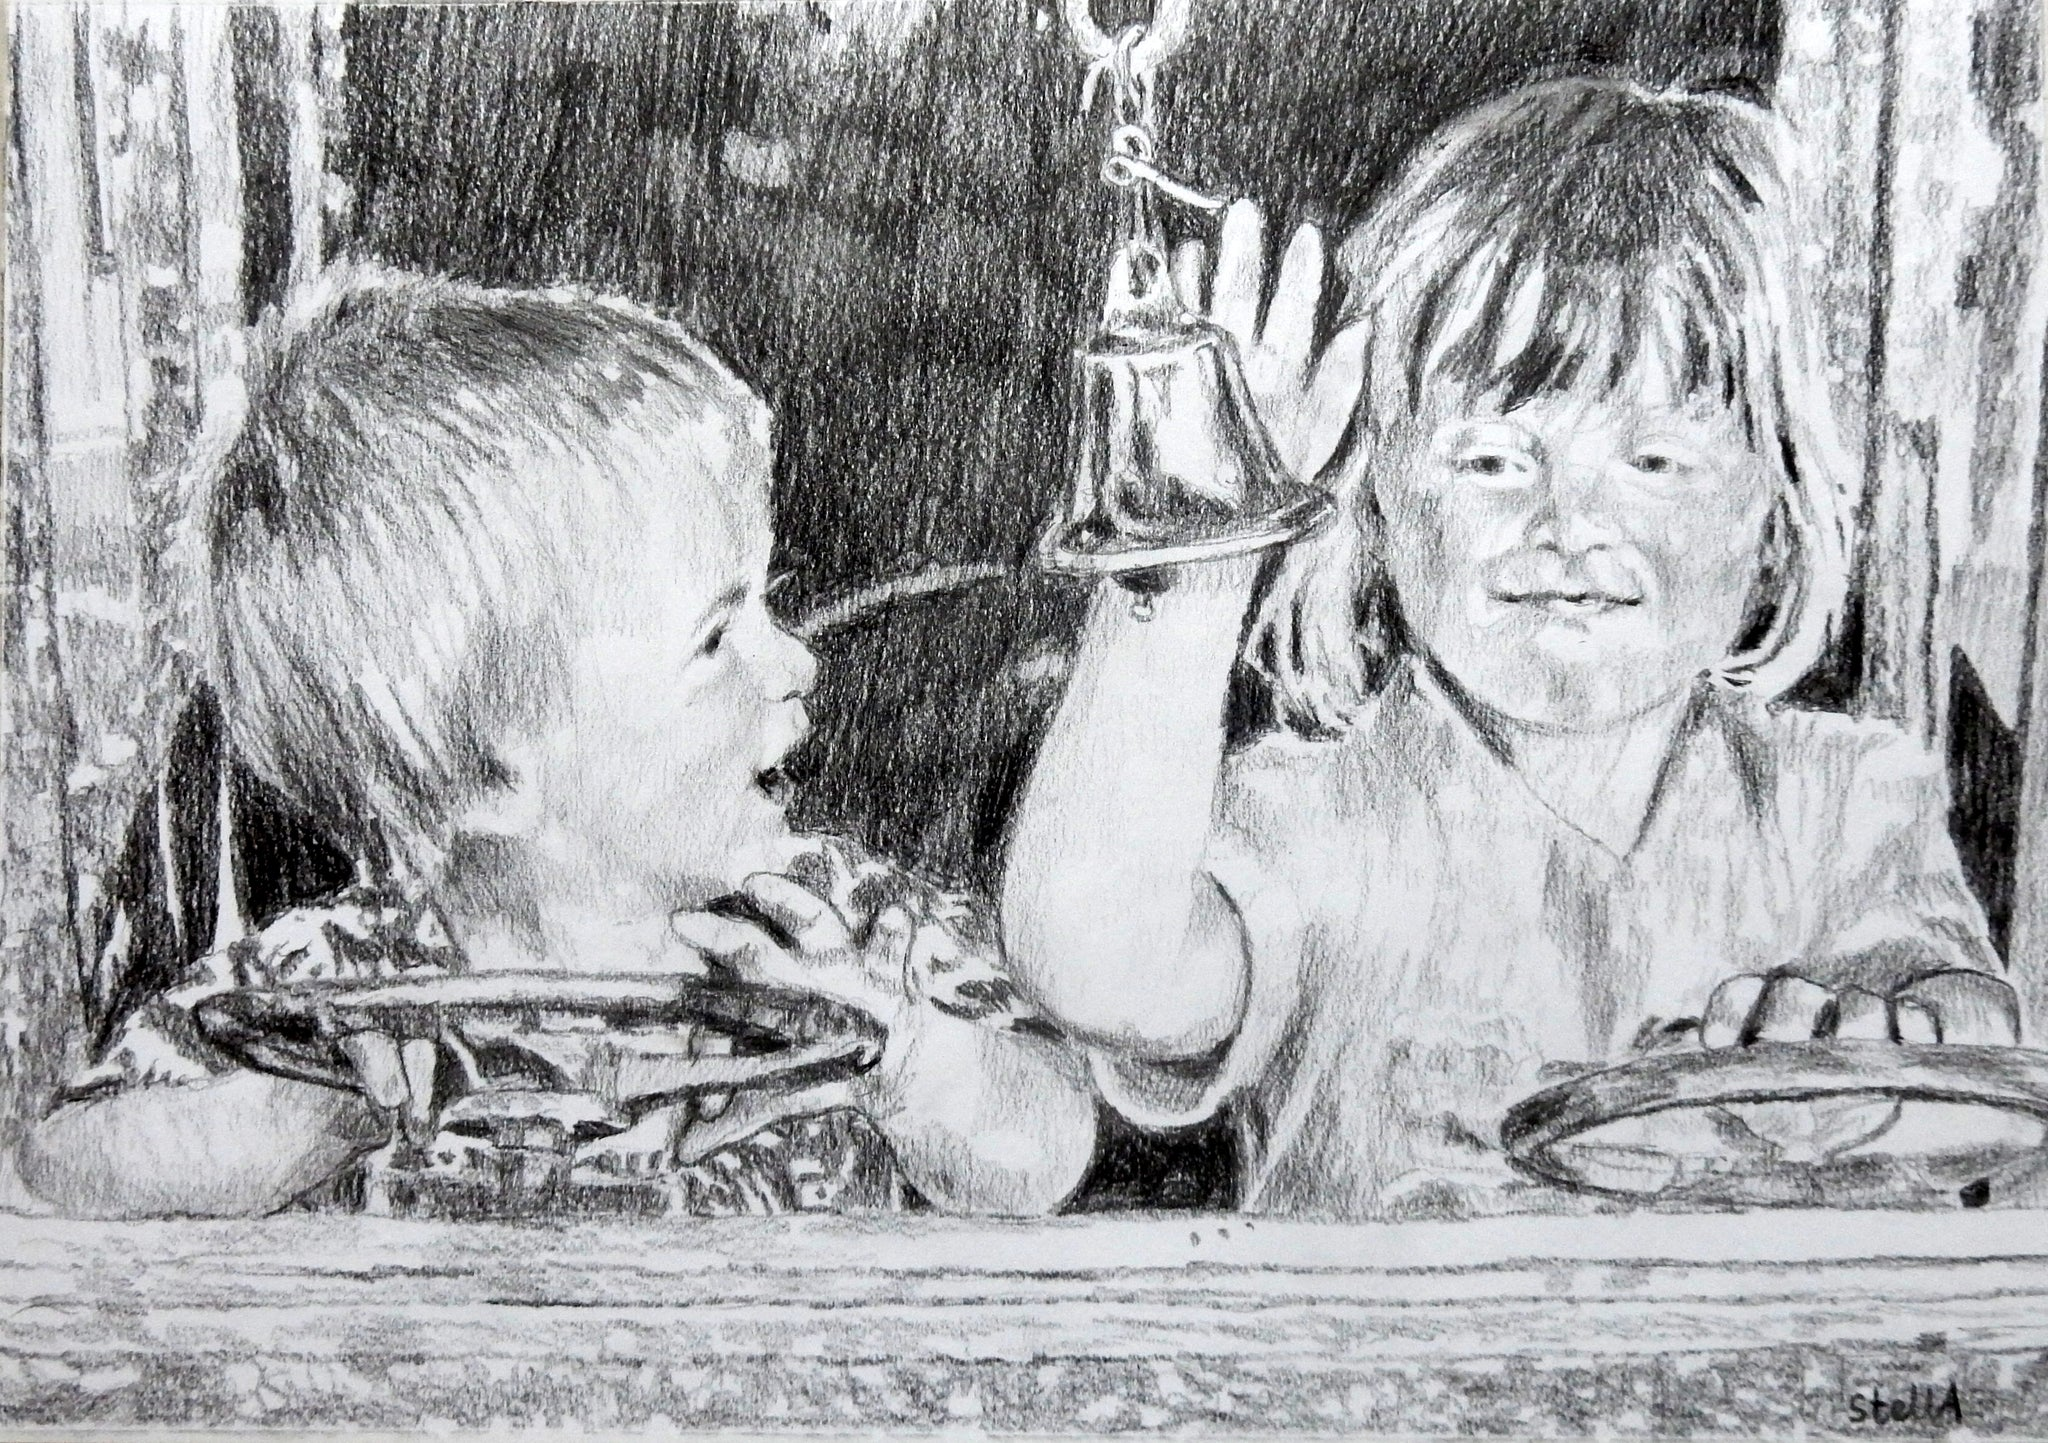 Drawn commission of two siblings by portrait artist Stella Tooth